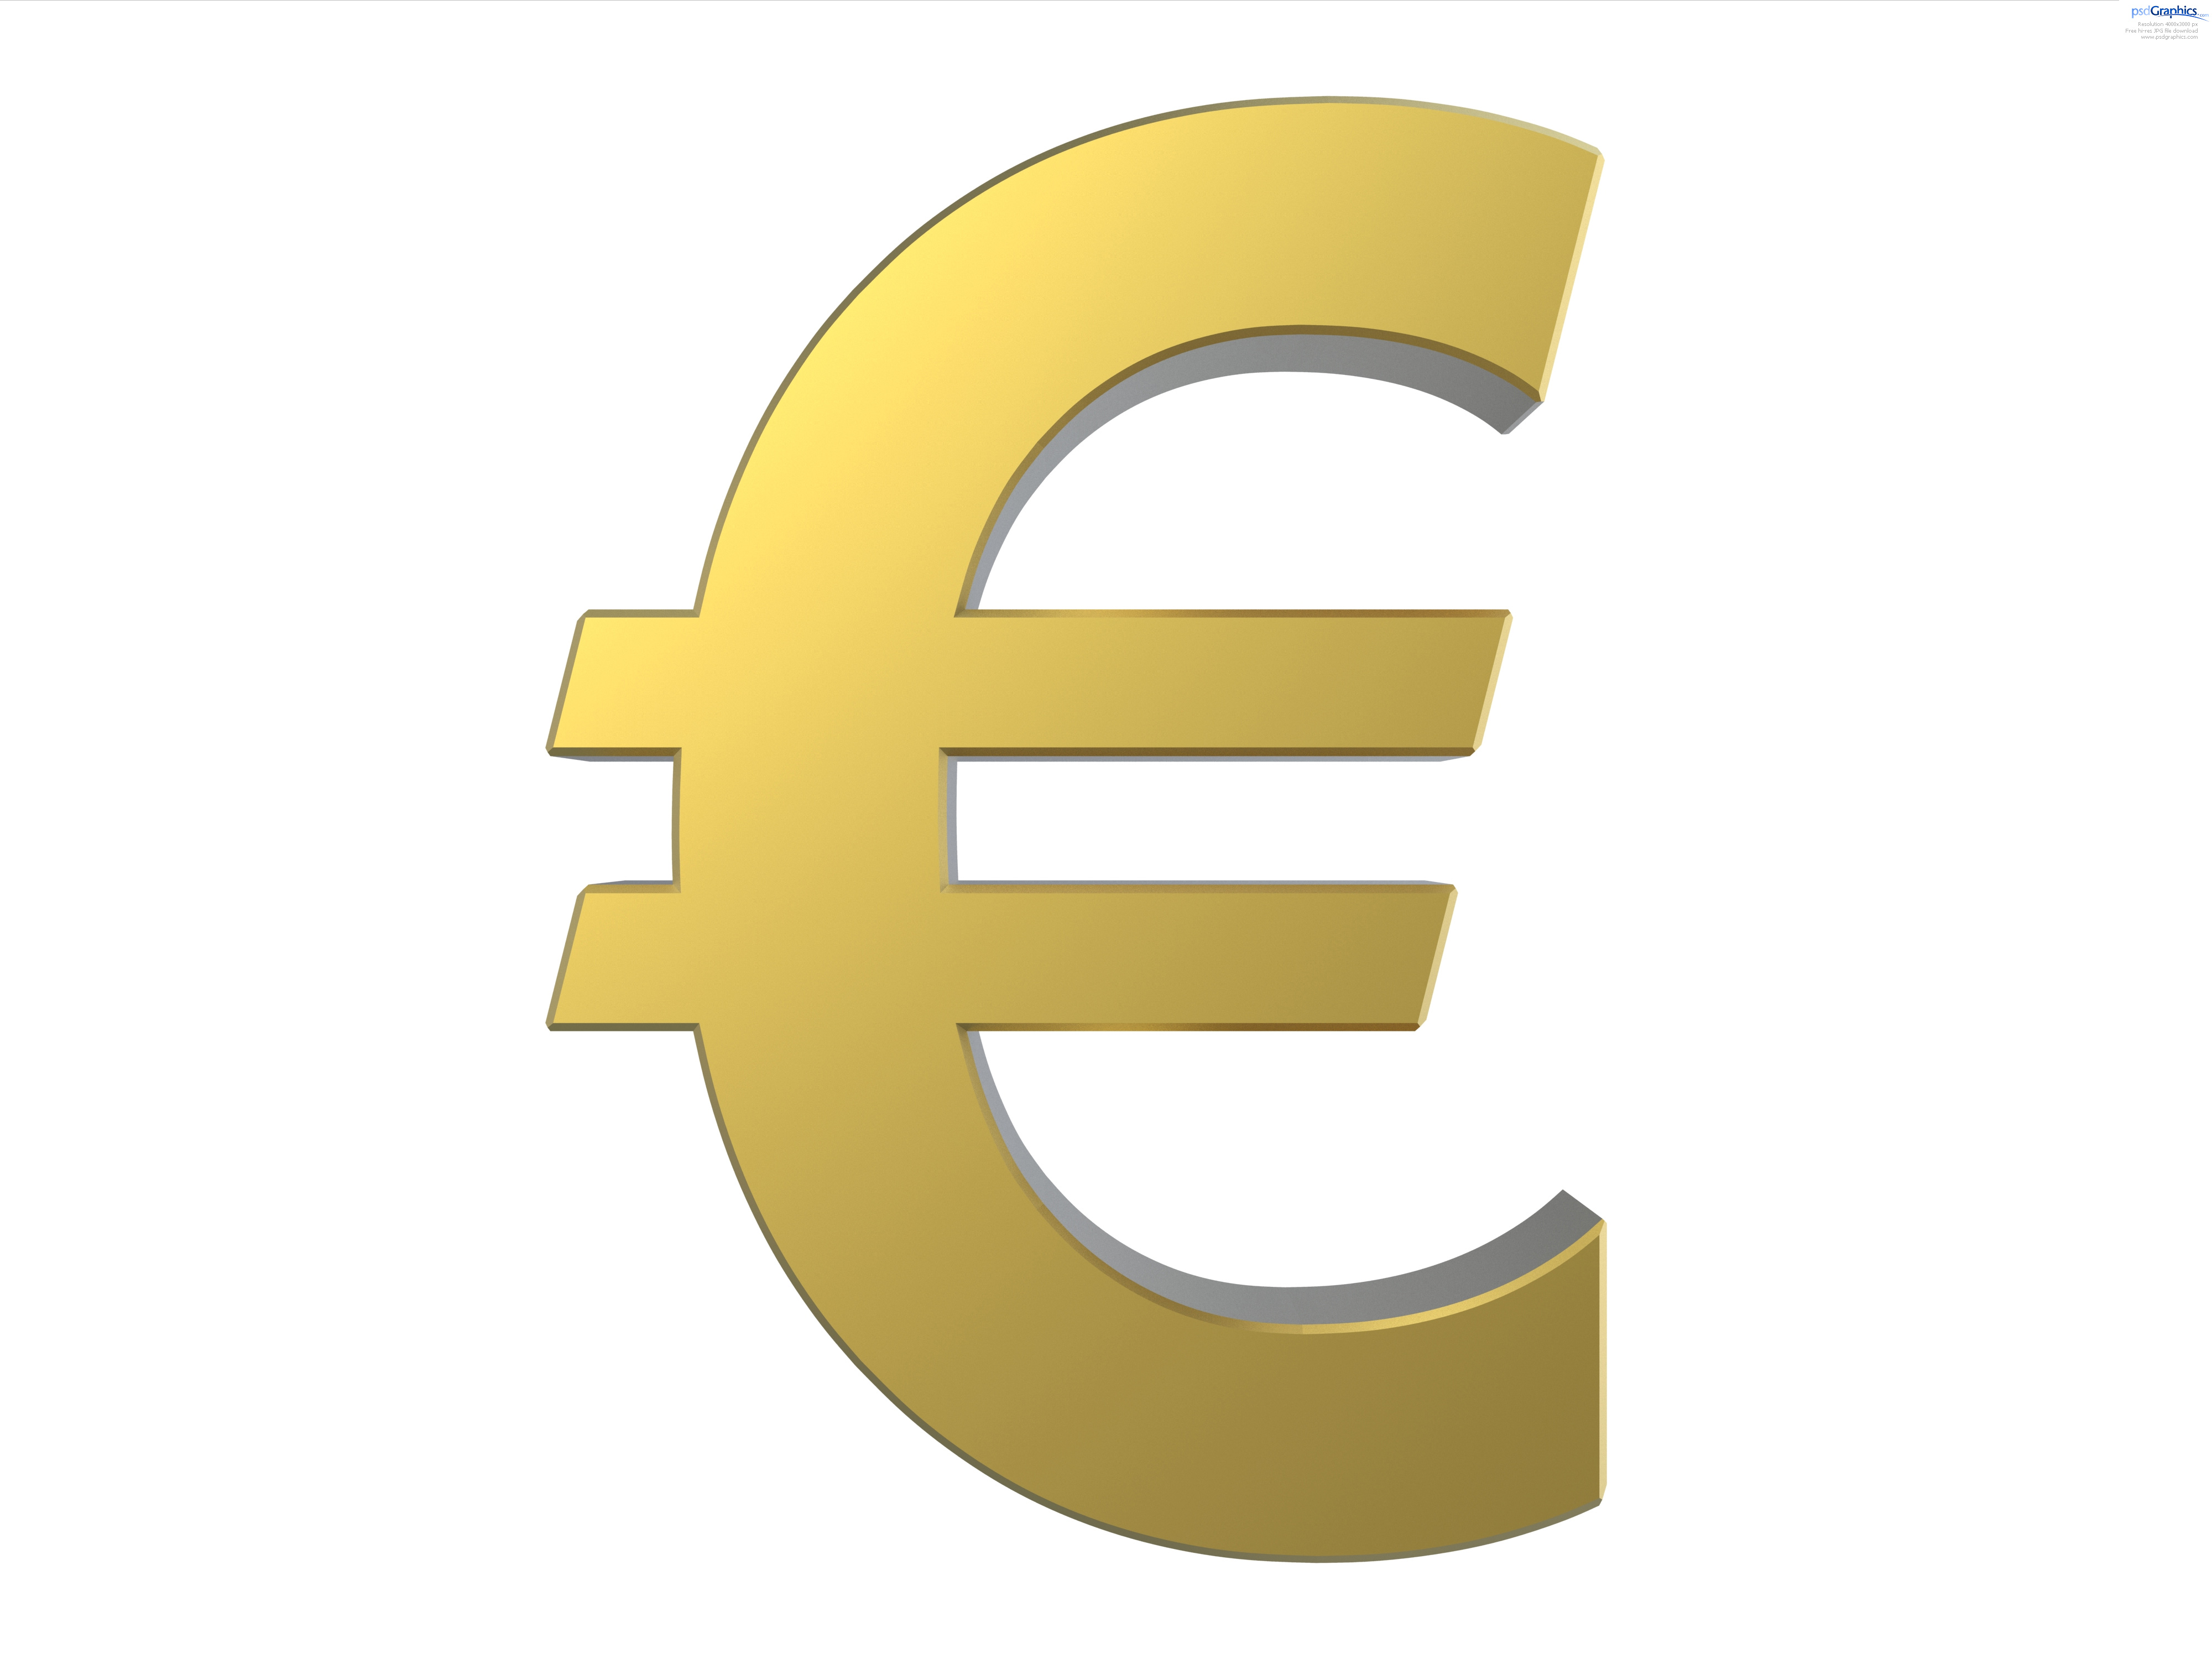 What Is The Symbol For Euro Dollars Images Meaning Of This Symbol